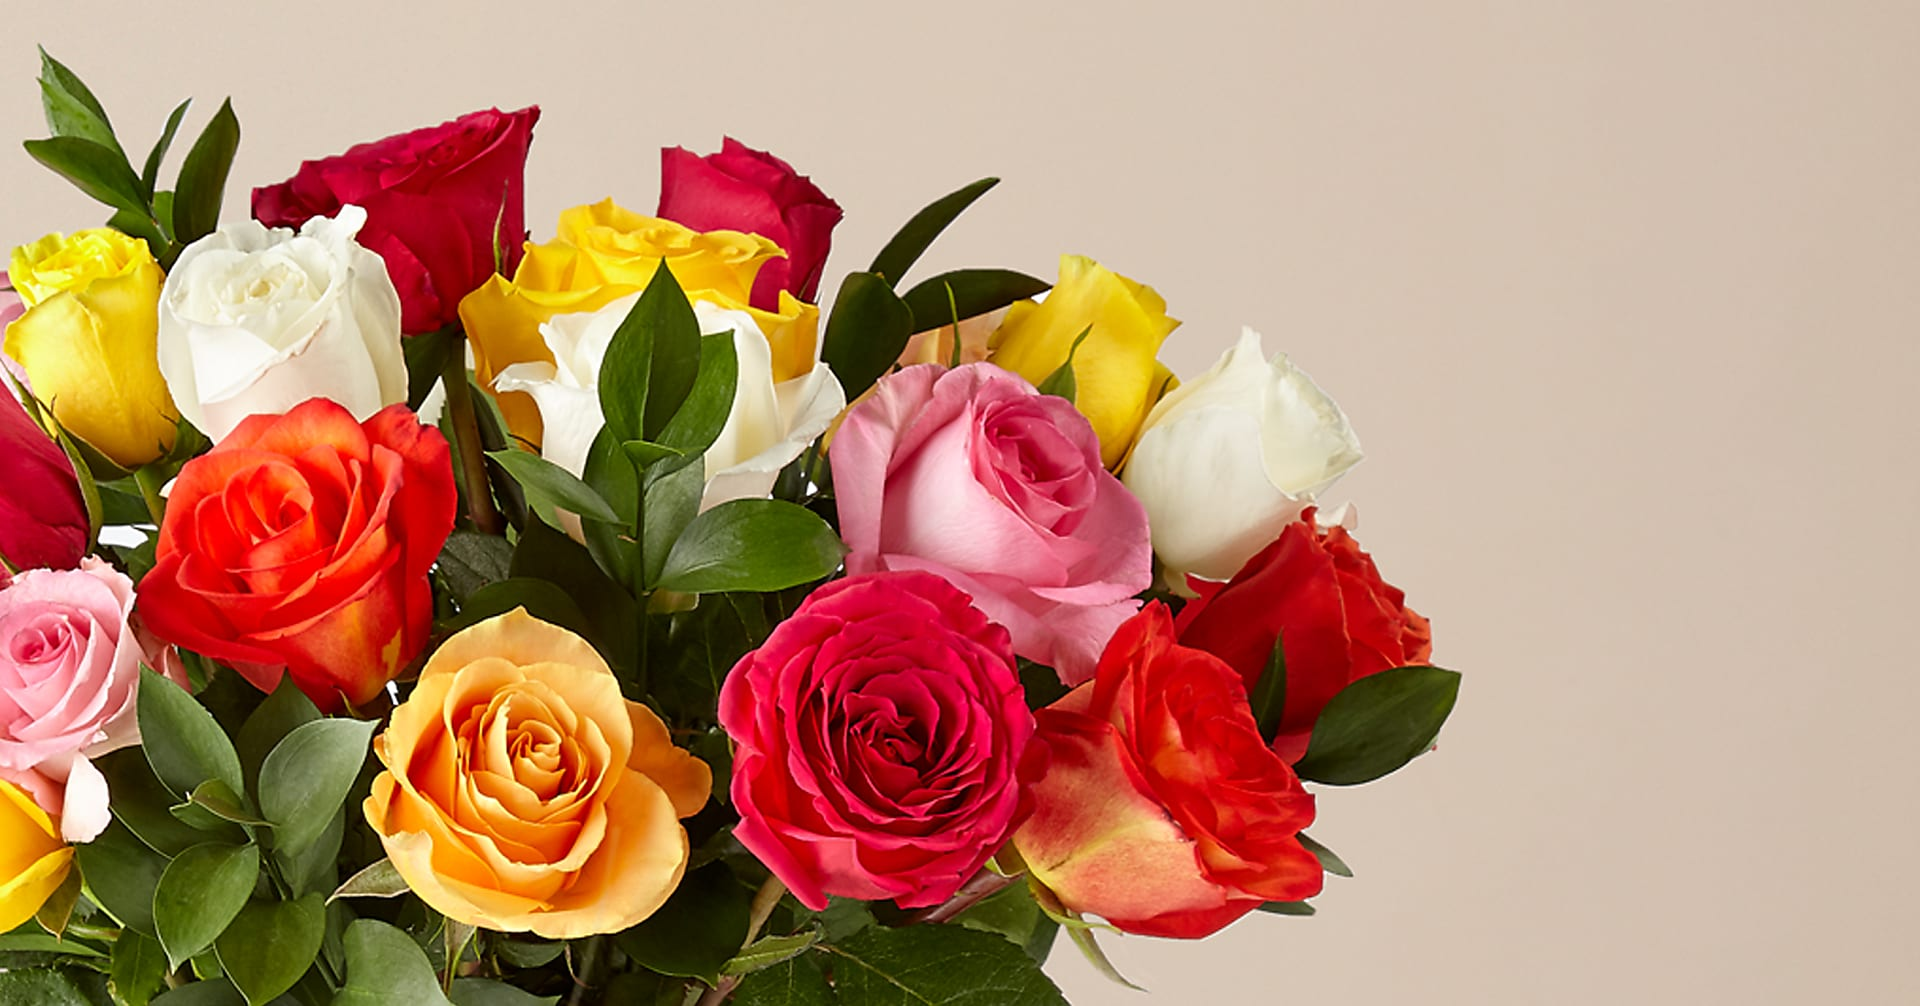 Mixed Roses with Vase - Image 4 Of 6